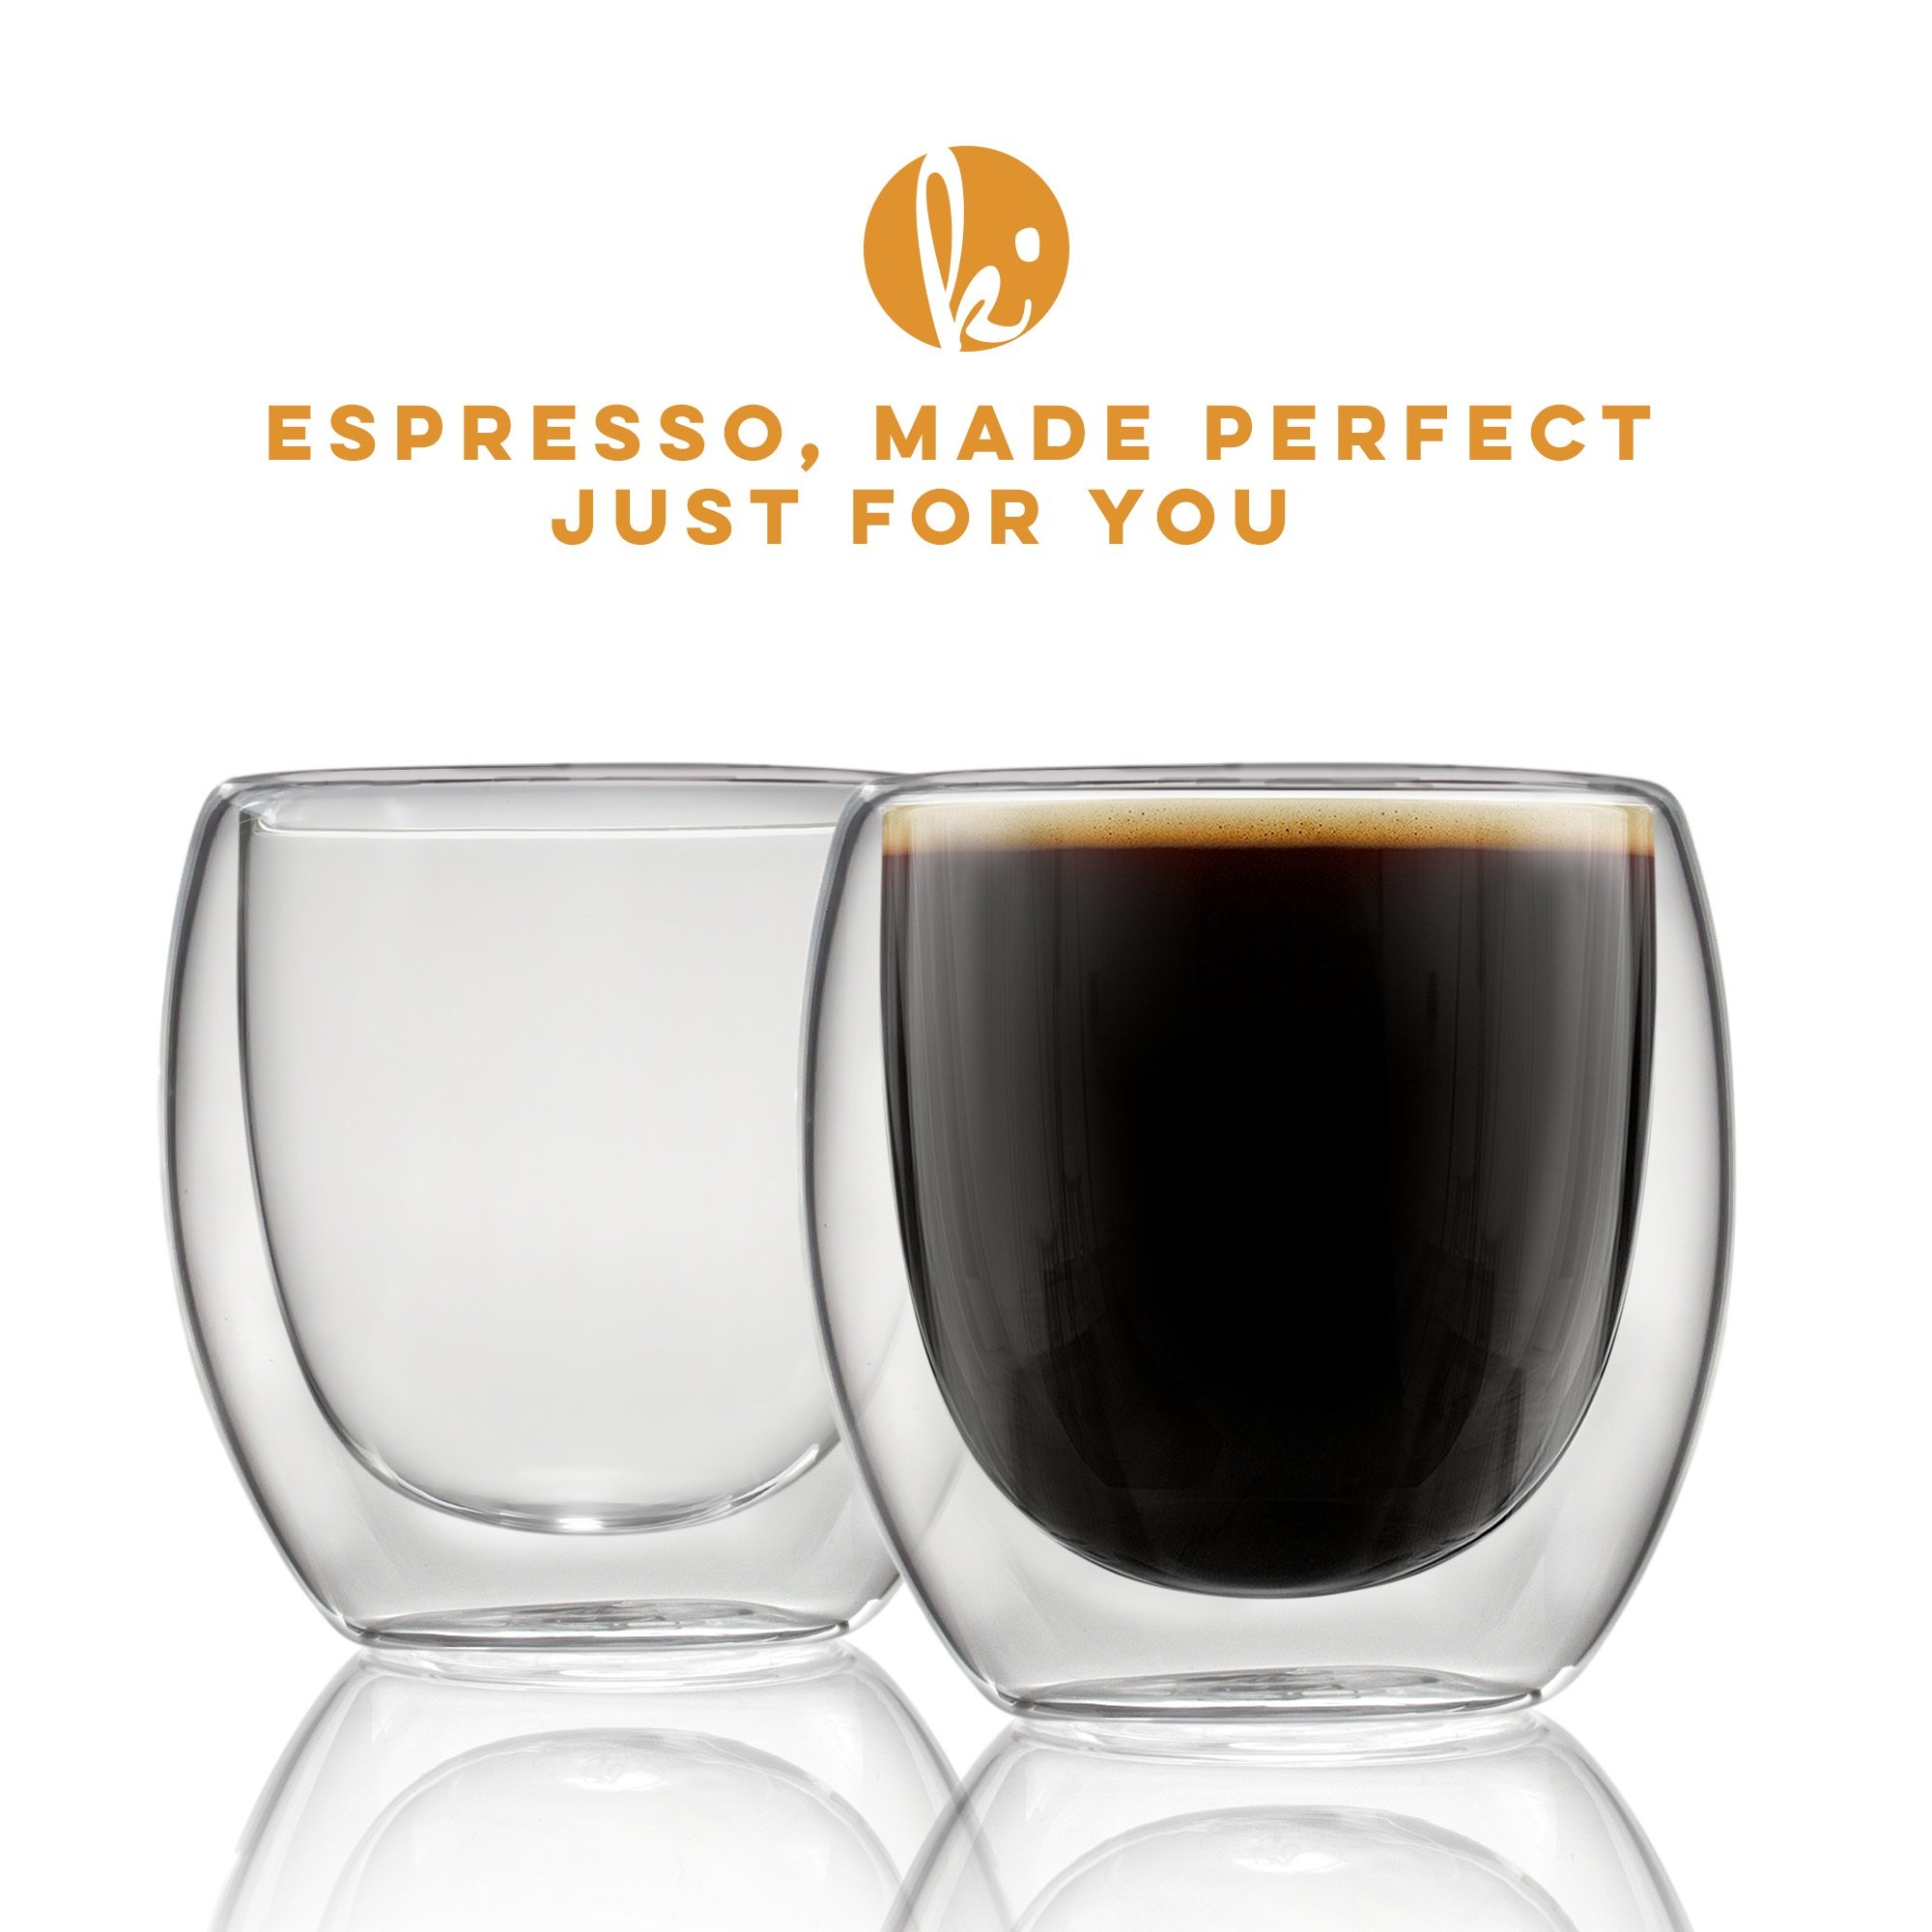 Espresso Cups Shot Glass Coffee Set of 4 - Double Wall Thermo Insulated by Kitchables (Image #2)